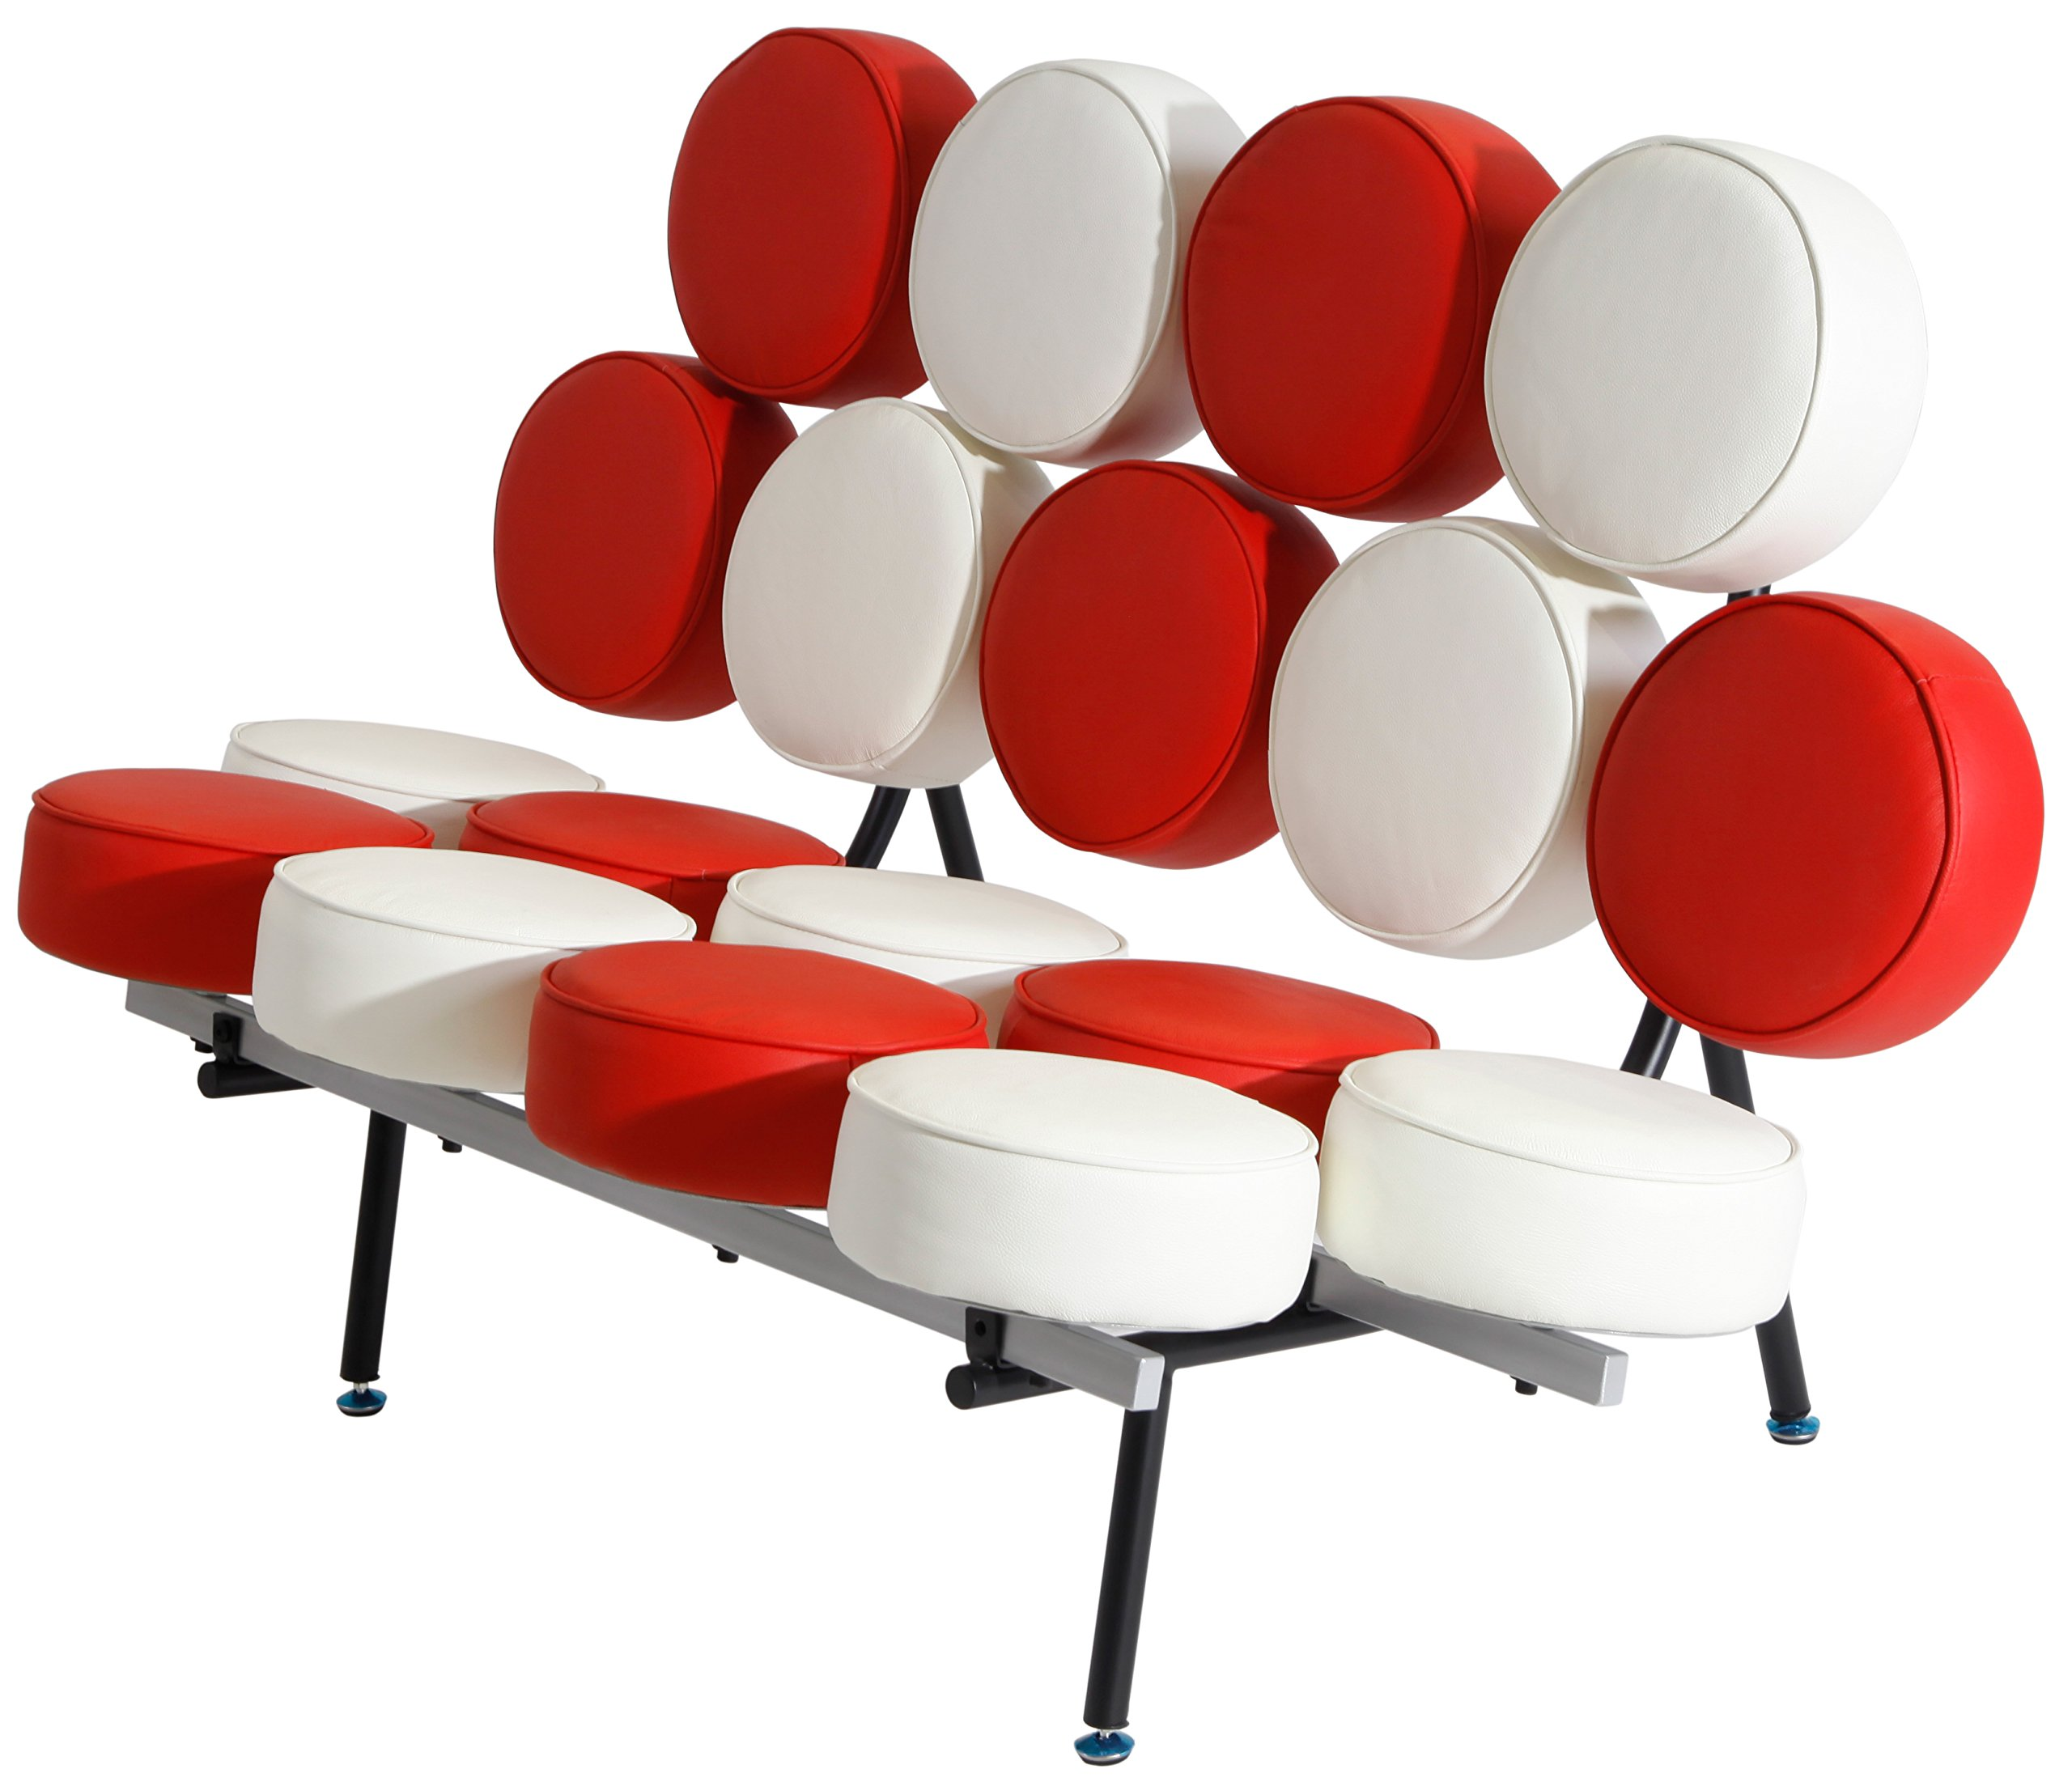 MLF Nelson Marshmallow Sofa (7 Colors). Imported Italian Leather, Comfortable, Solid, Durable, Artistic, Easy Cleaning & Interchanged, Floor Protector Pads Adjustable.(Red + White/Cream)